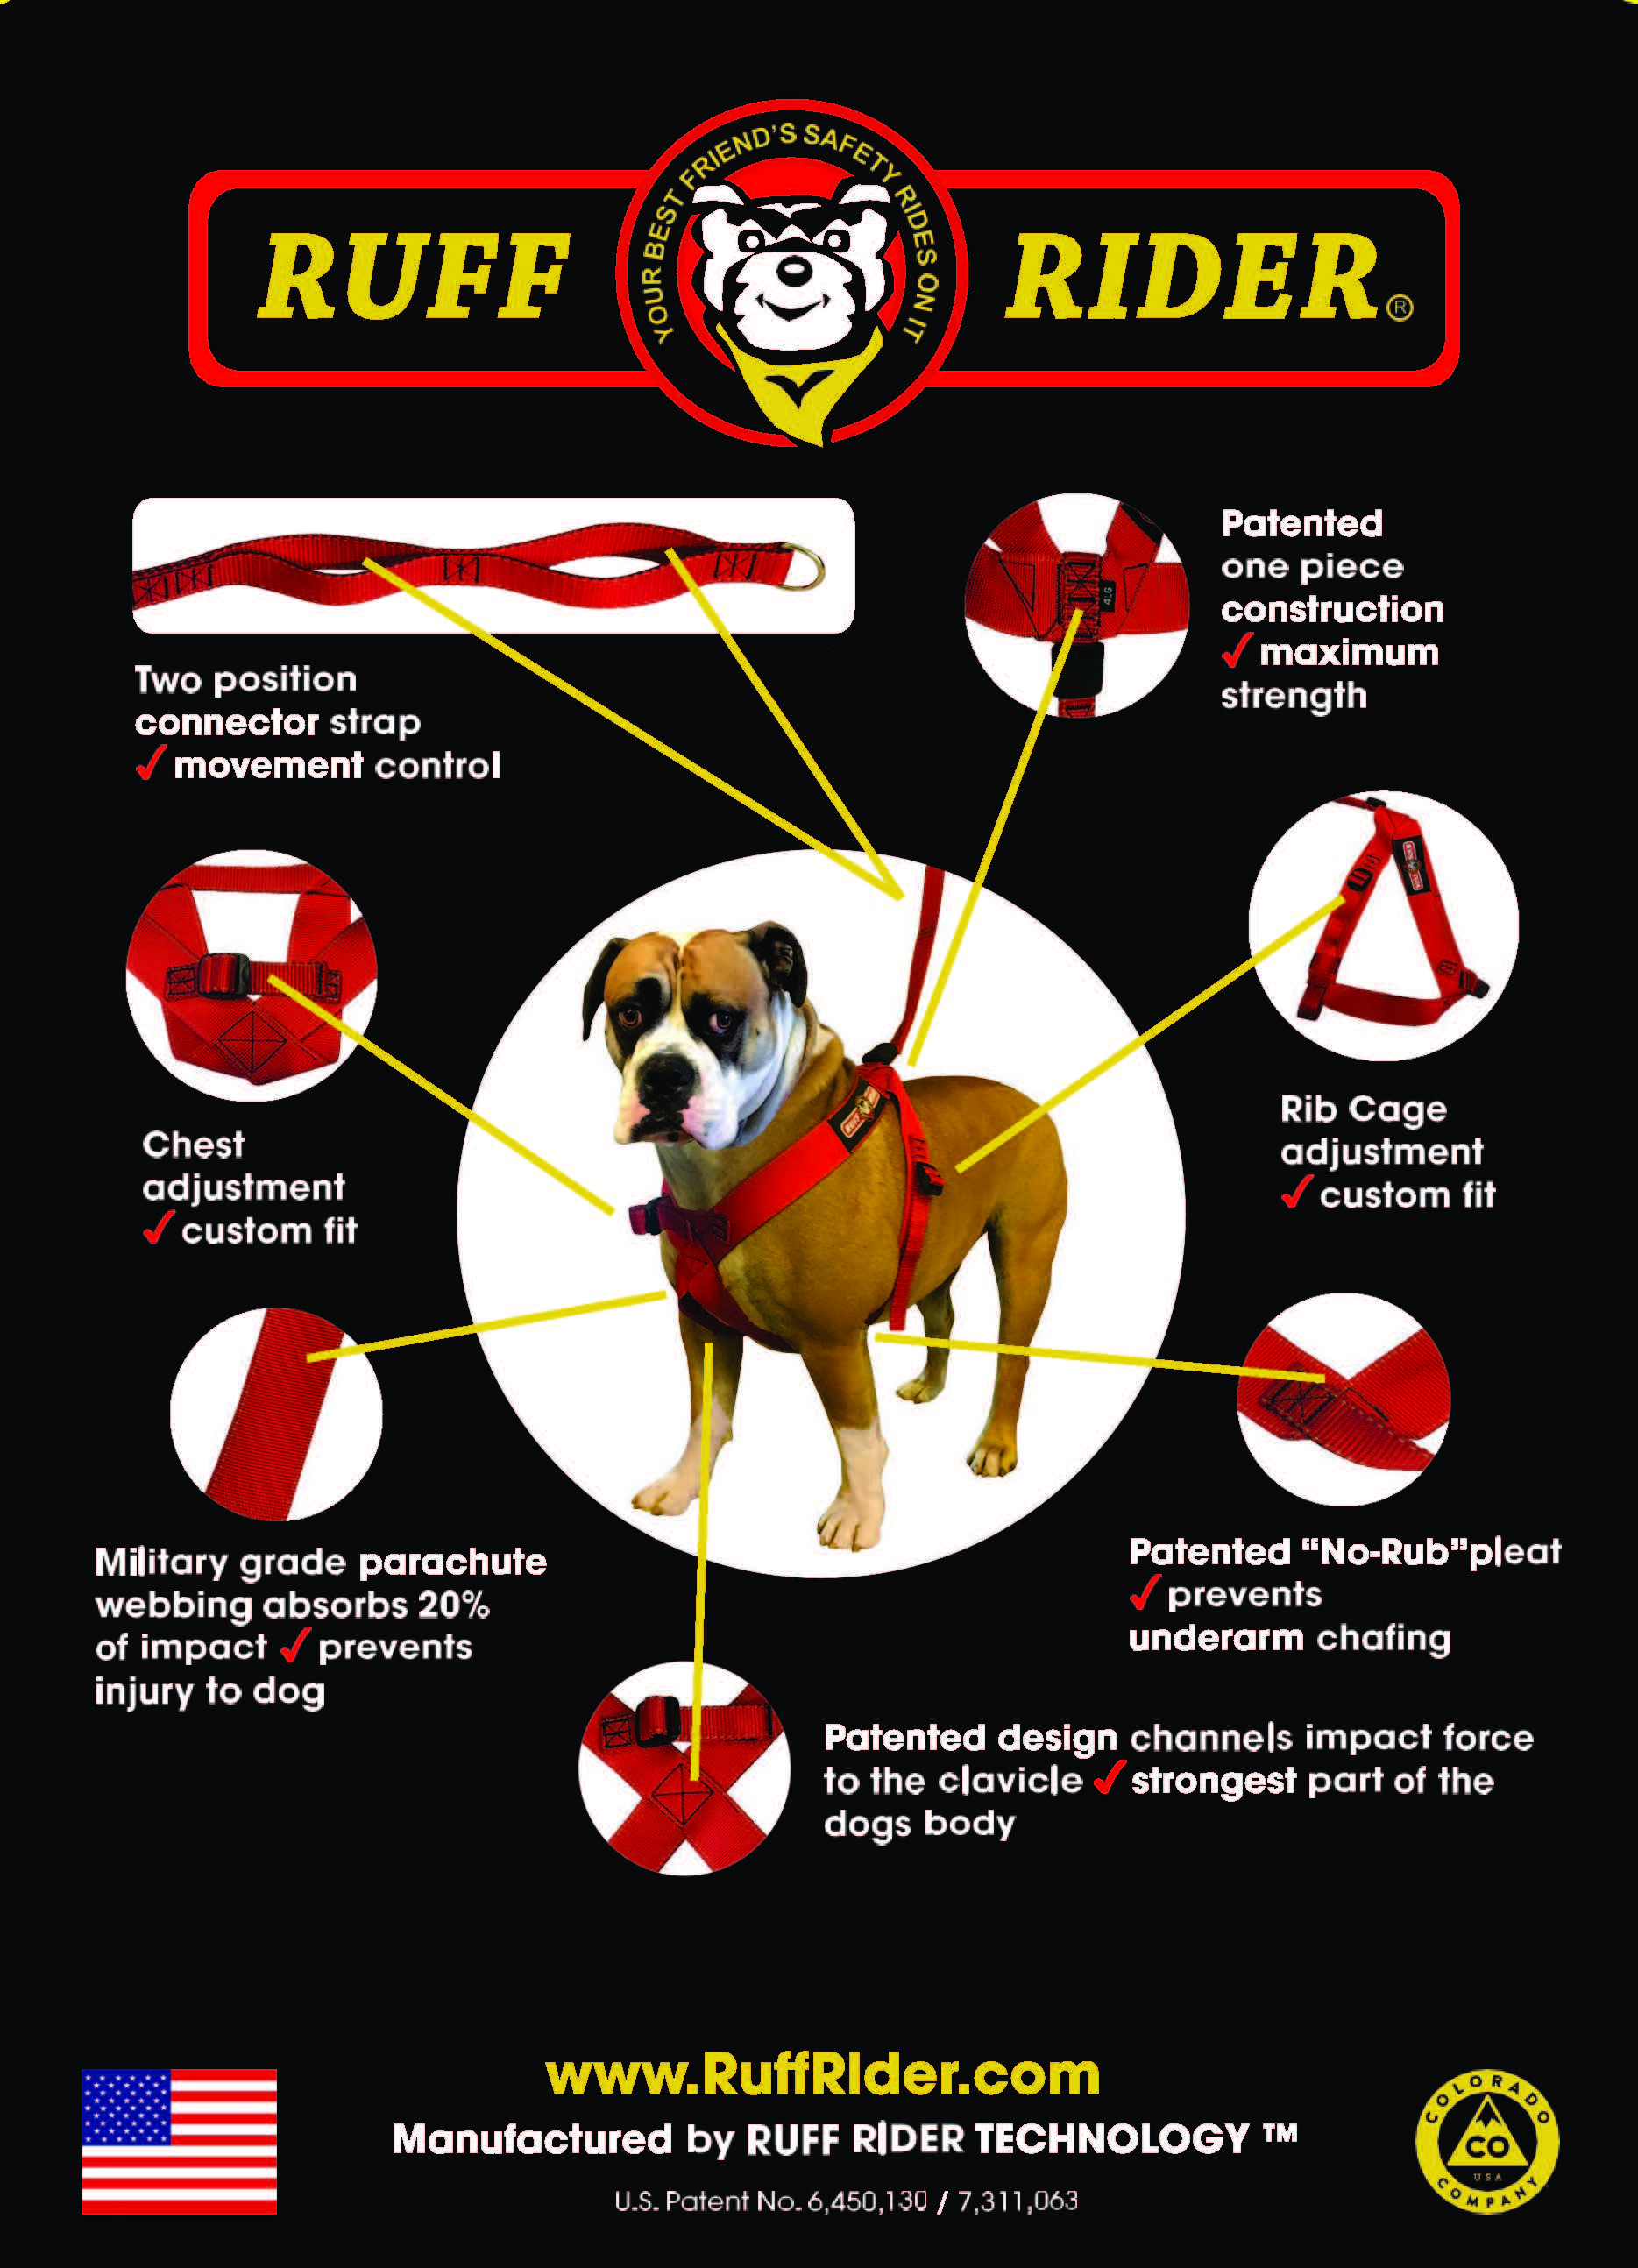 Ruffrider Giant Breed Safety Harness Info